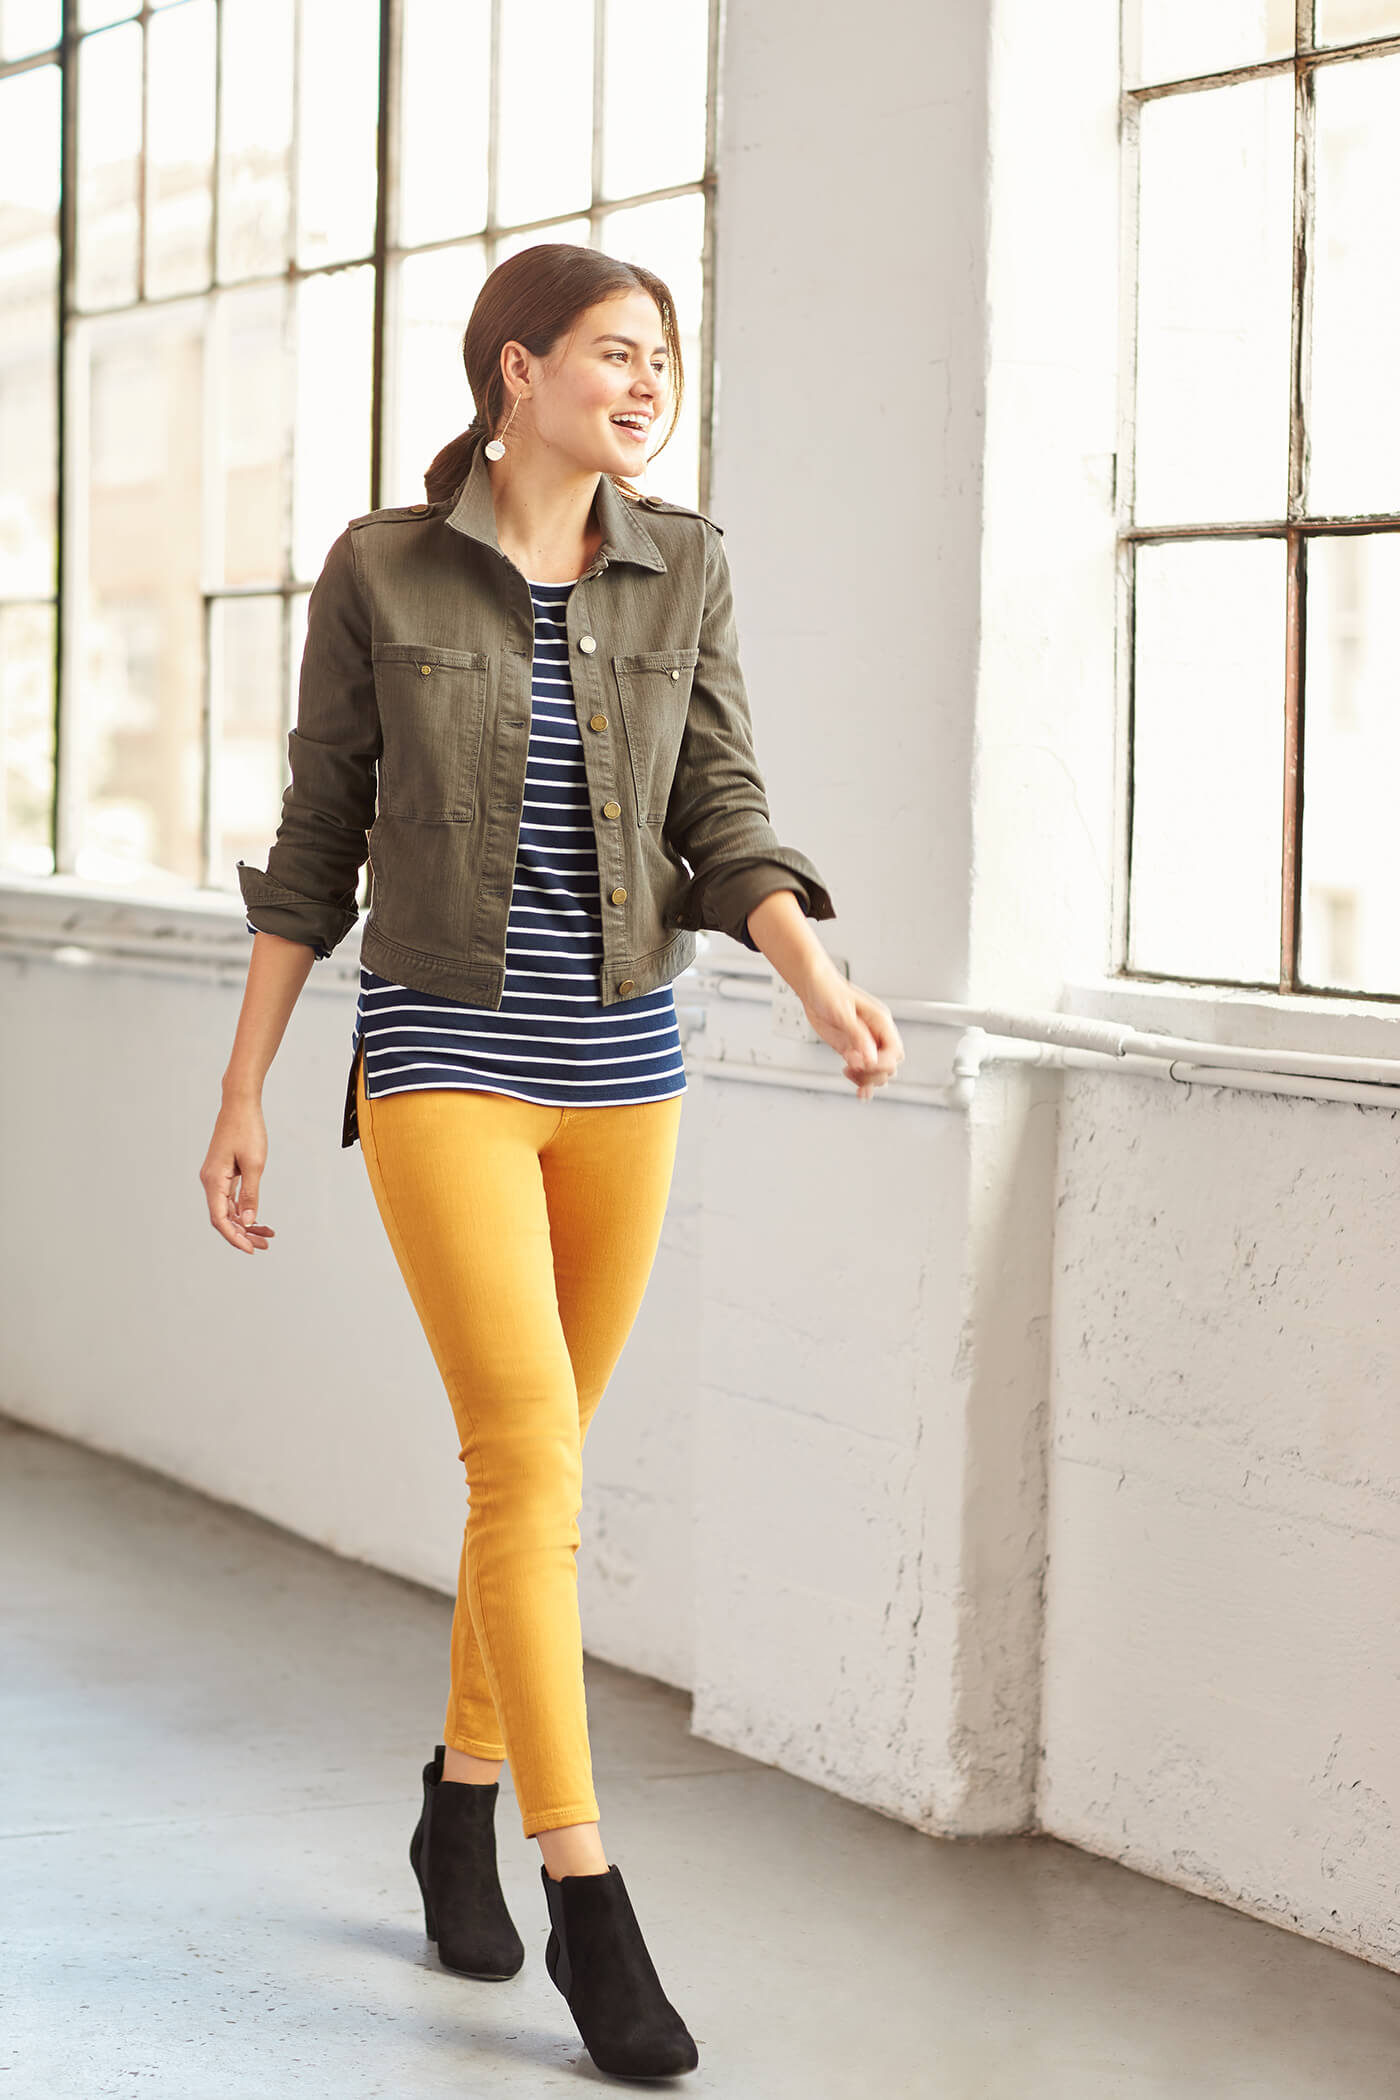 Style a Striped Shirt